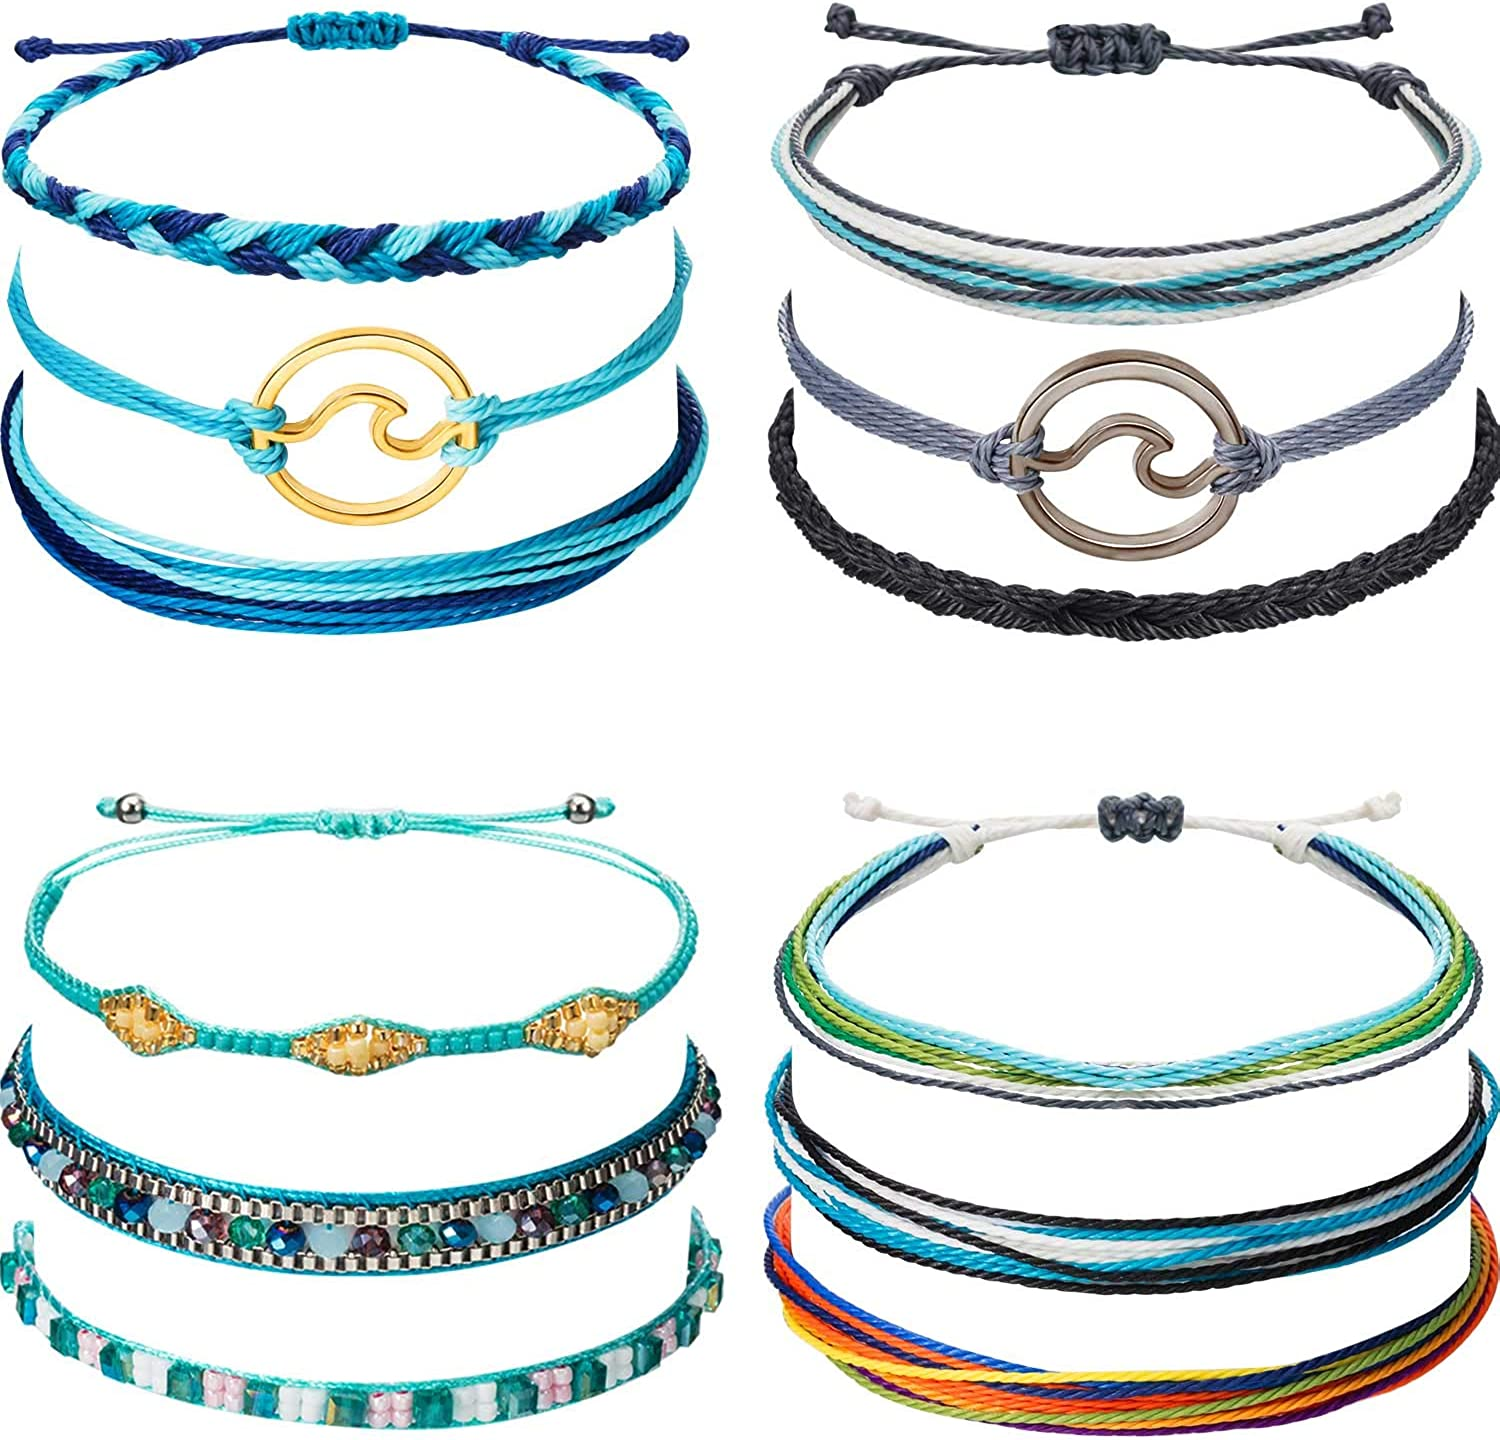 Chuangdi 12 Pieces Wave Strand Bracelet Set Handmade Adjustable Friendship Bracelet Handcrafted Jewelry Women